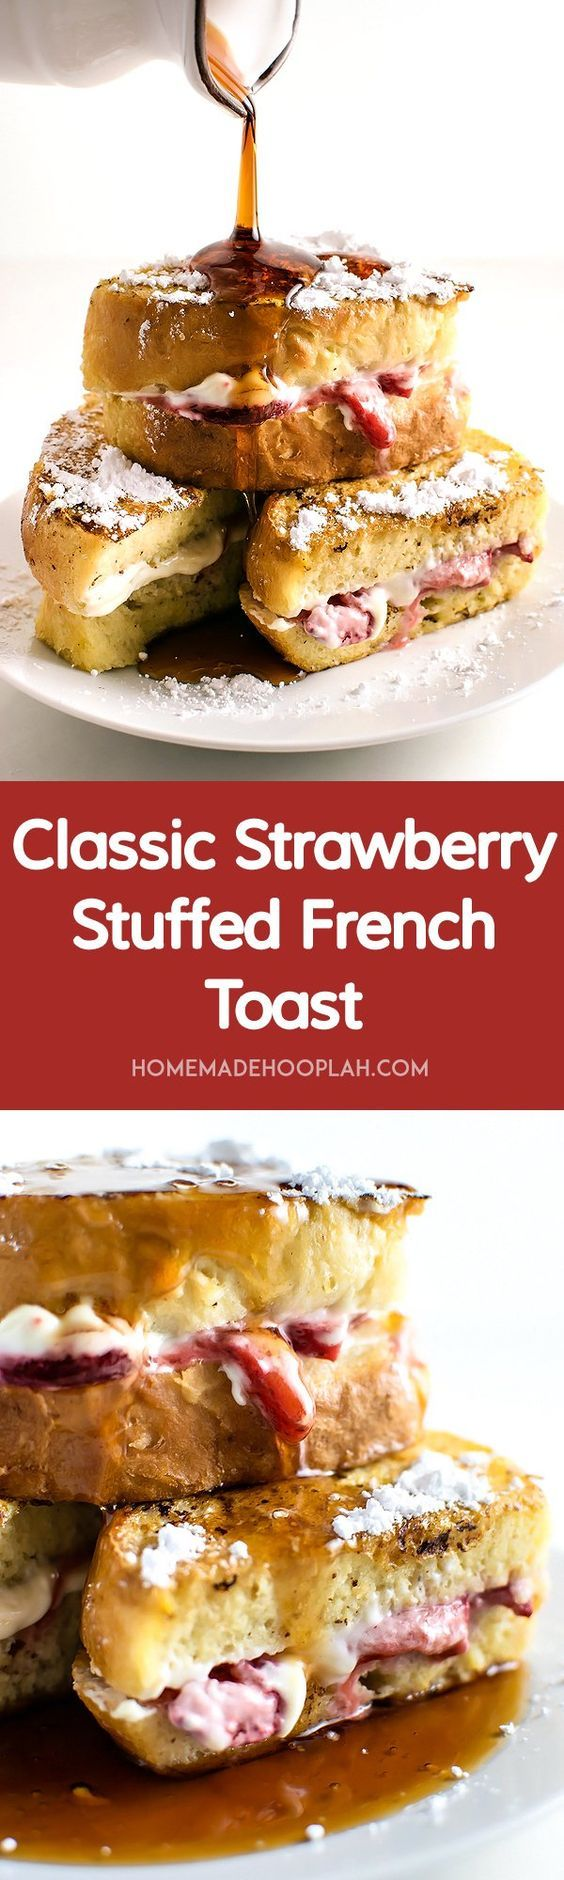 Classic Strawberry Stuffed French Toast! Vanilla and cinnamon french toast stuffed with sweet cream cheese filling and sugar coated strawberries. The classic indulgent breakfast! | HomemadeHooplah.com